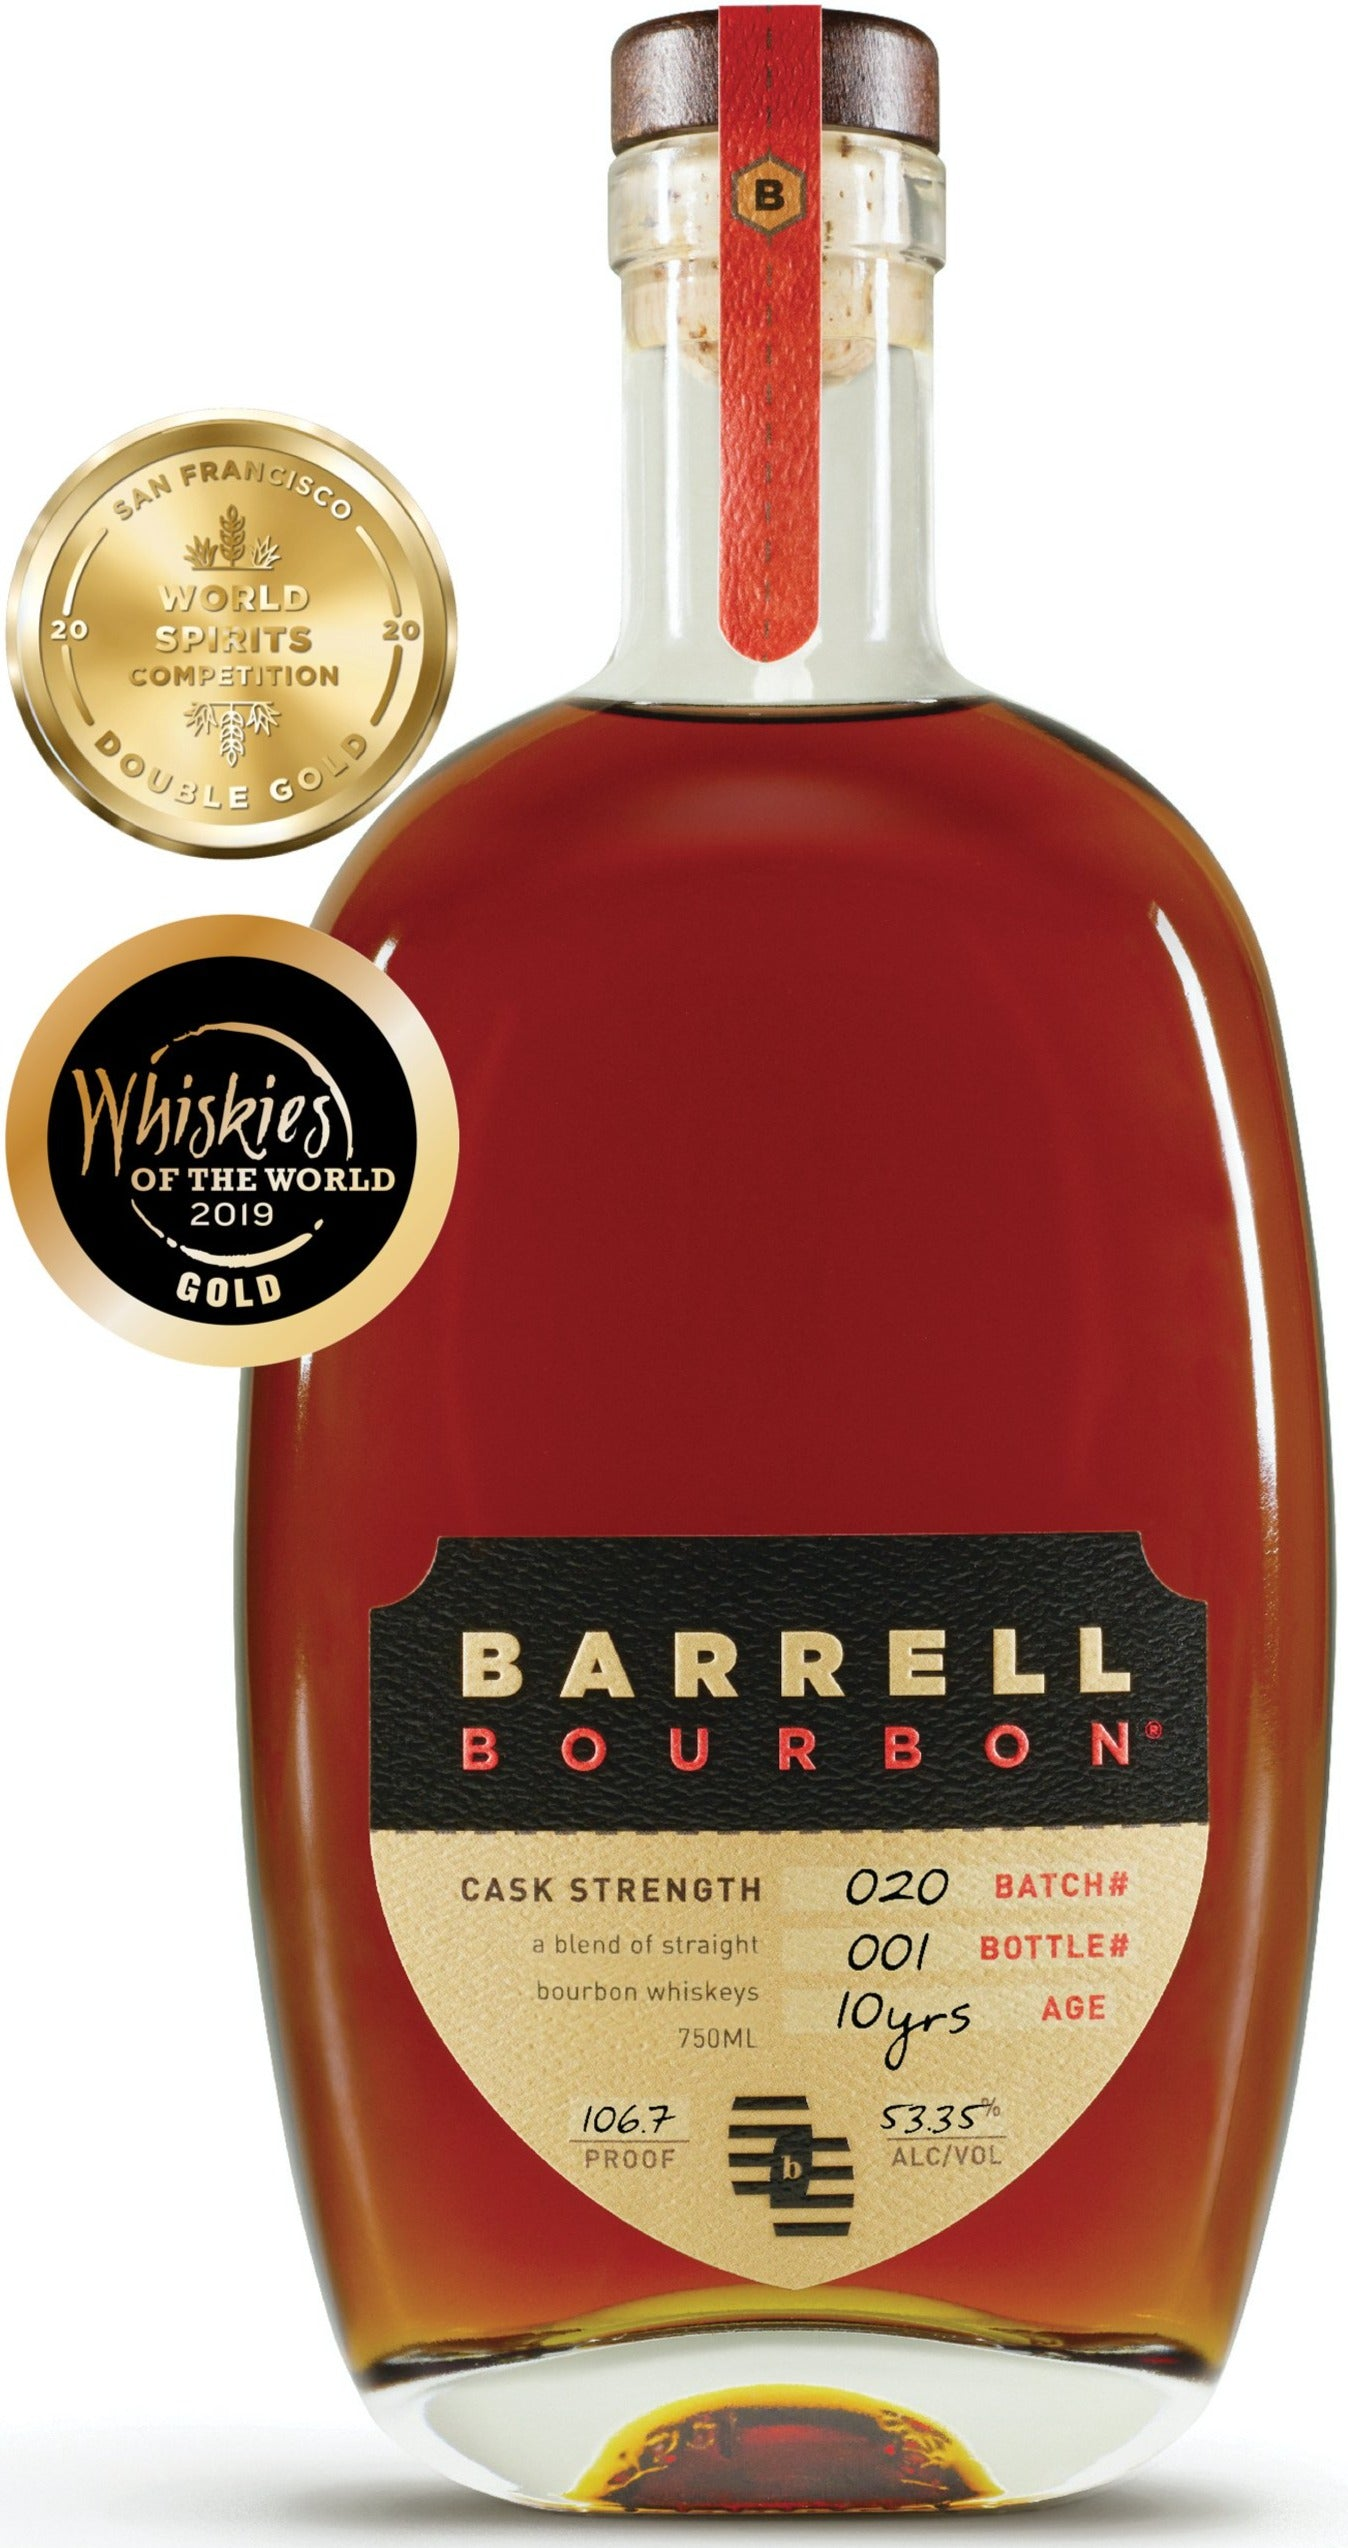 Barrell Bourbon Batch 020 53.35% abv 750ml